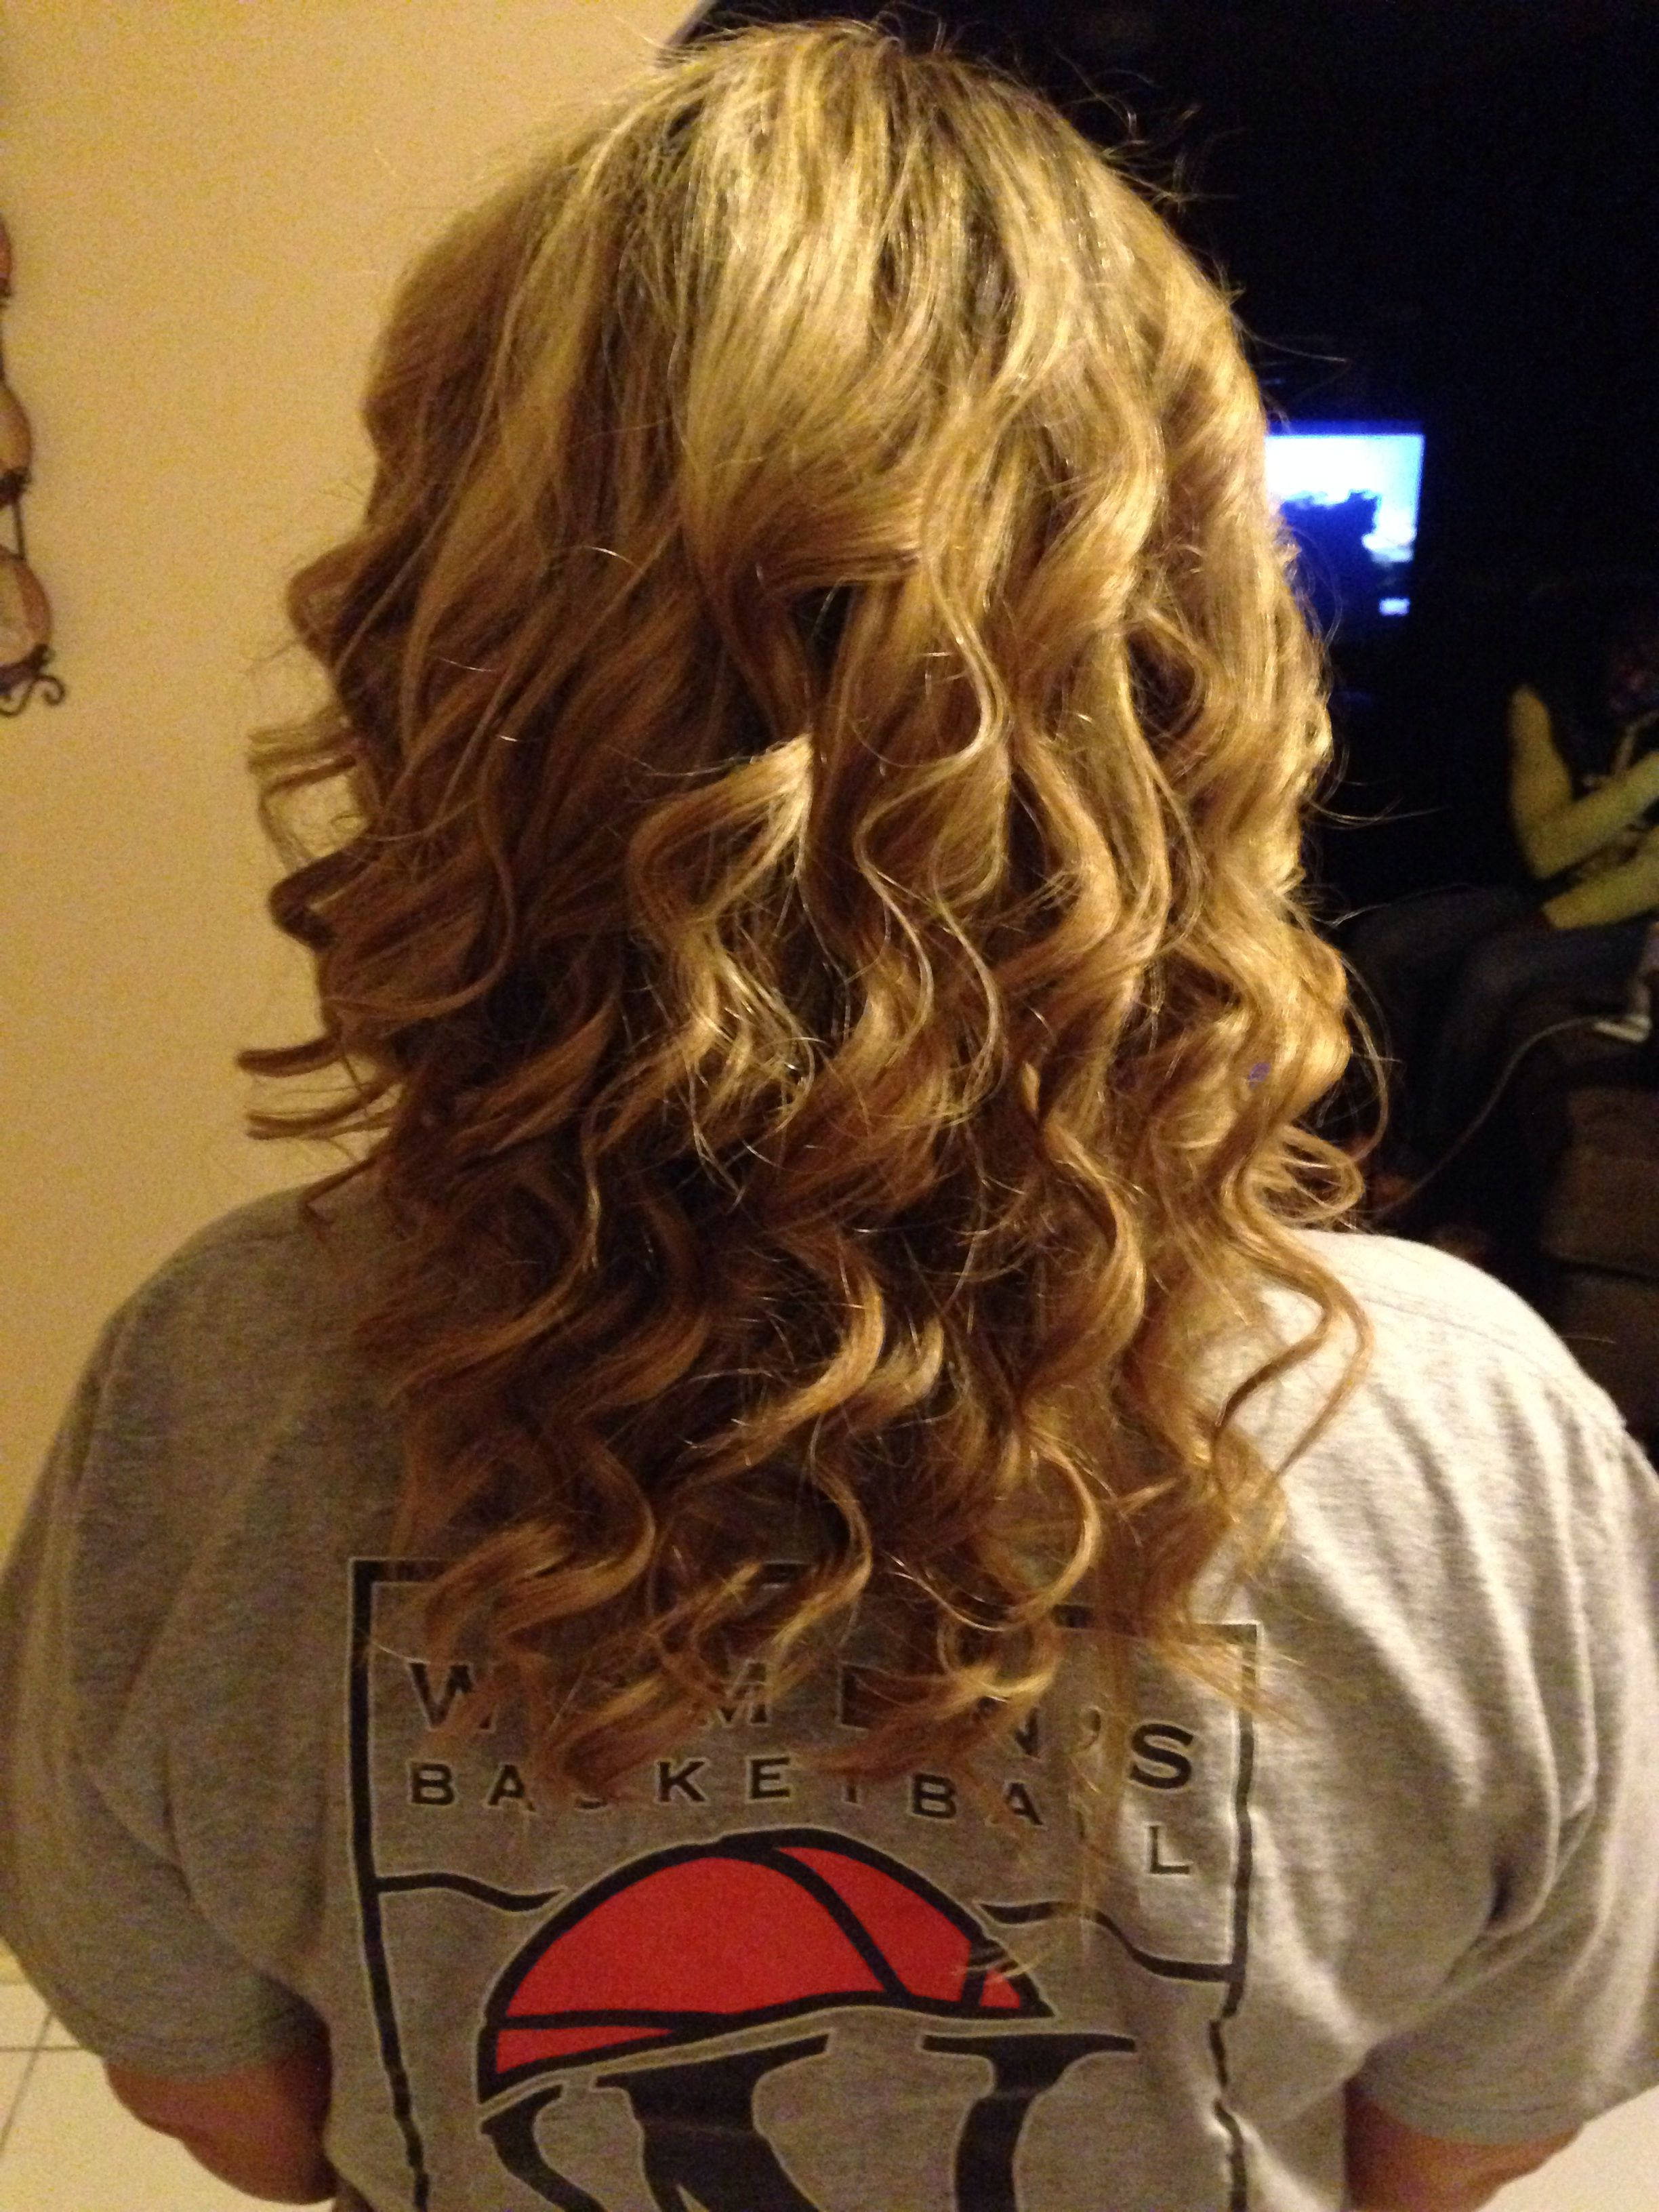 curled hair by a wand. curly hair for medium length. prom